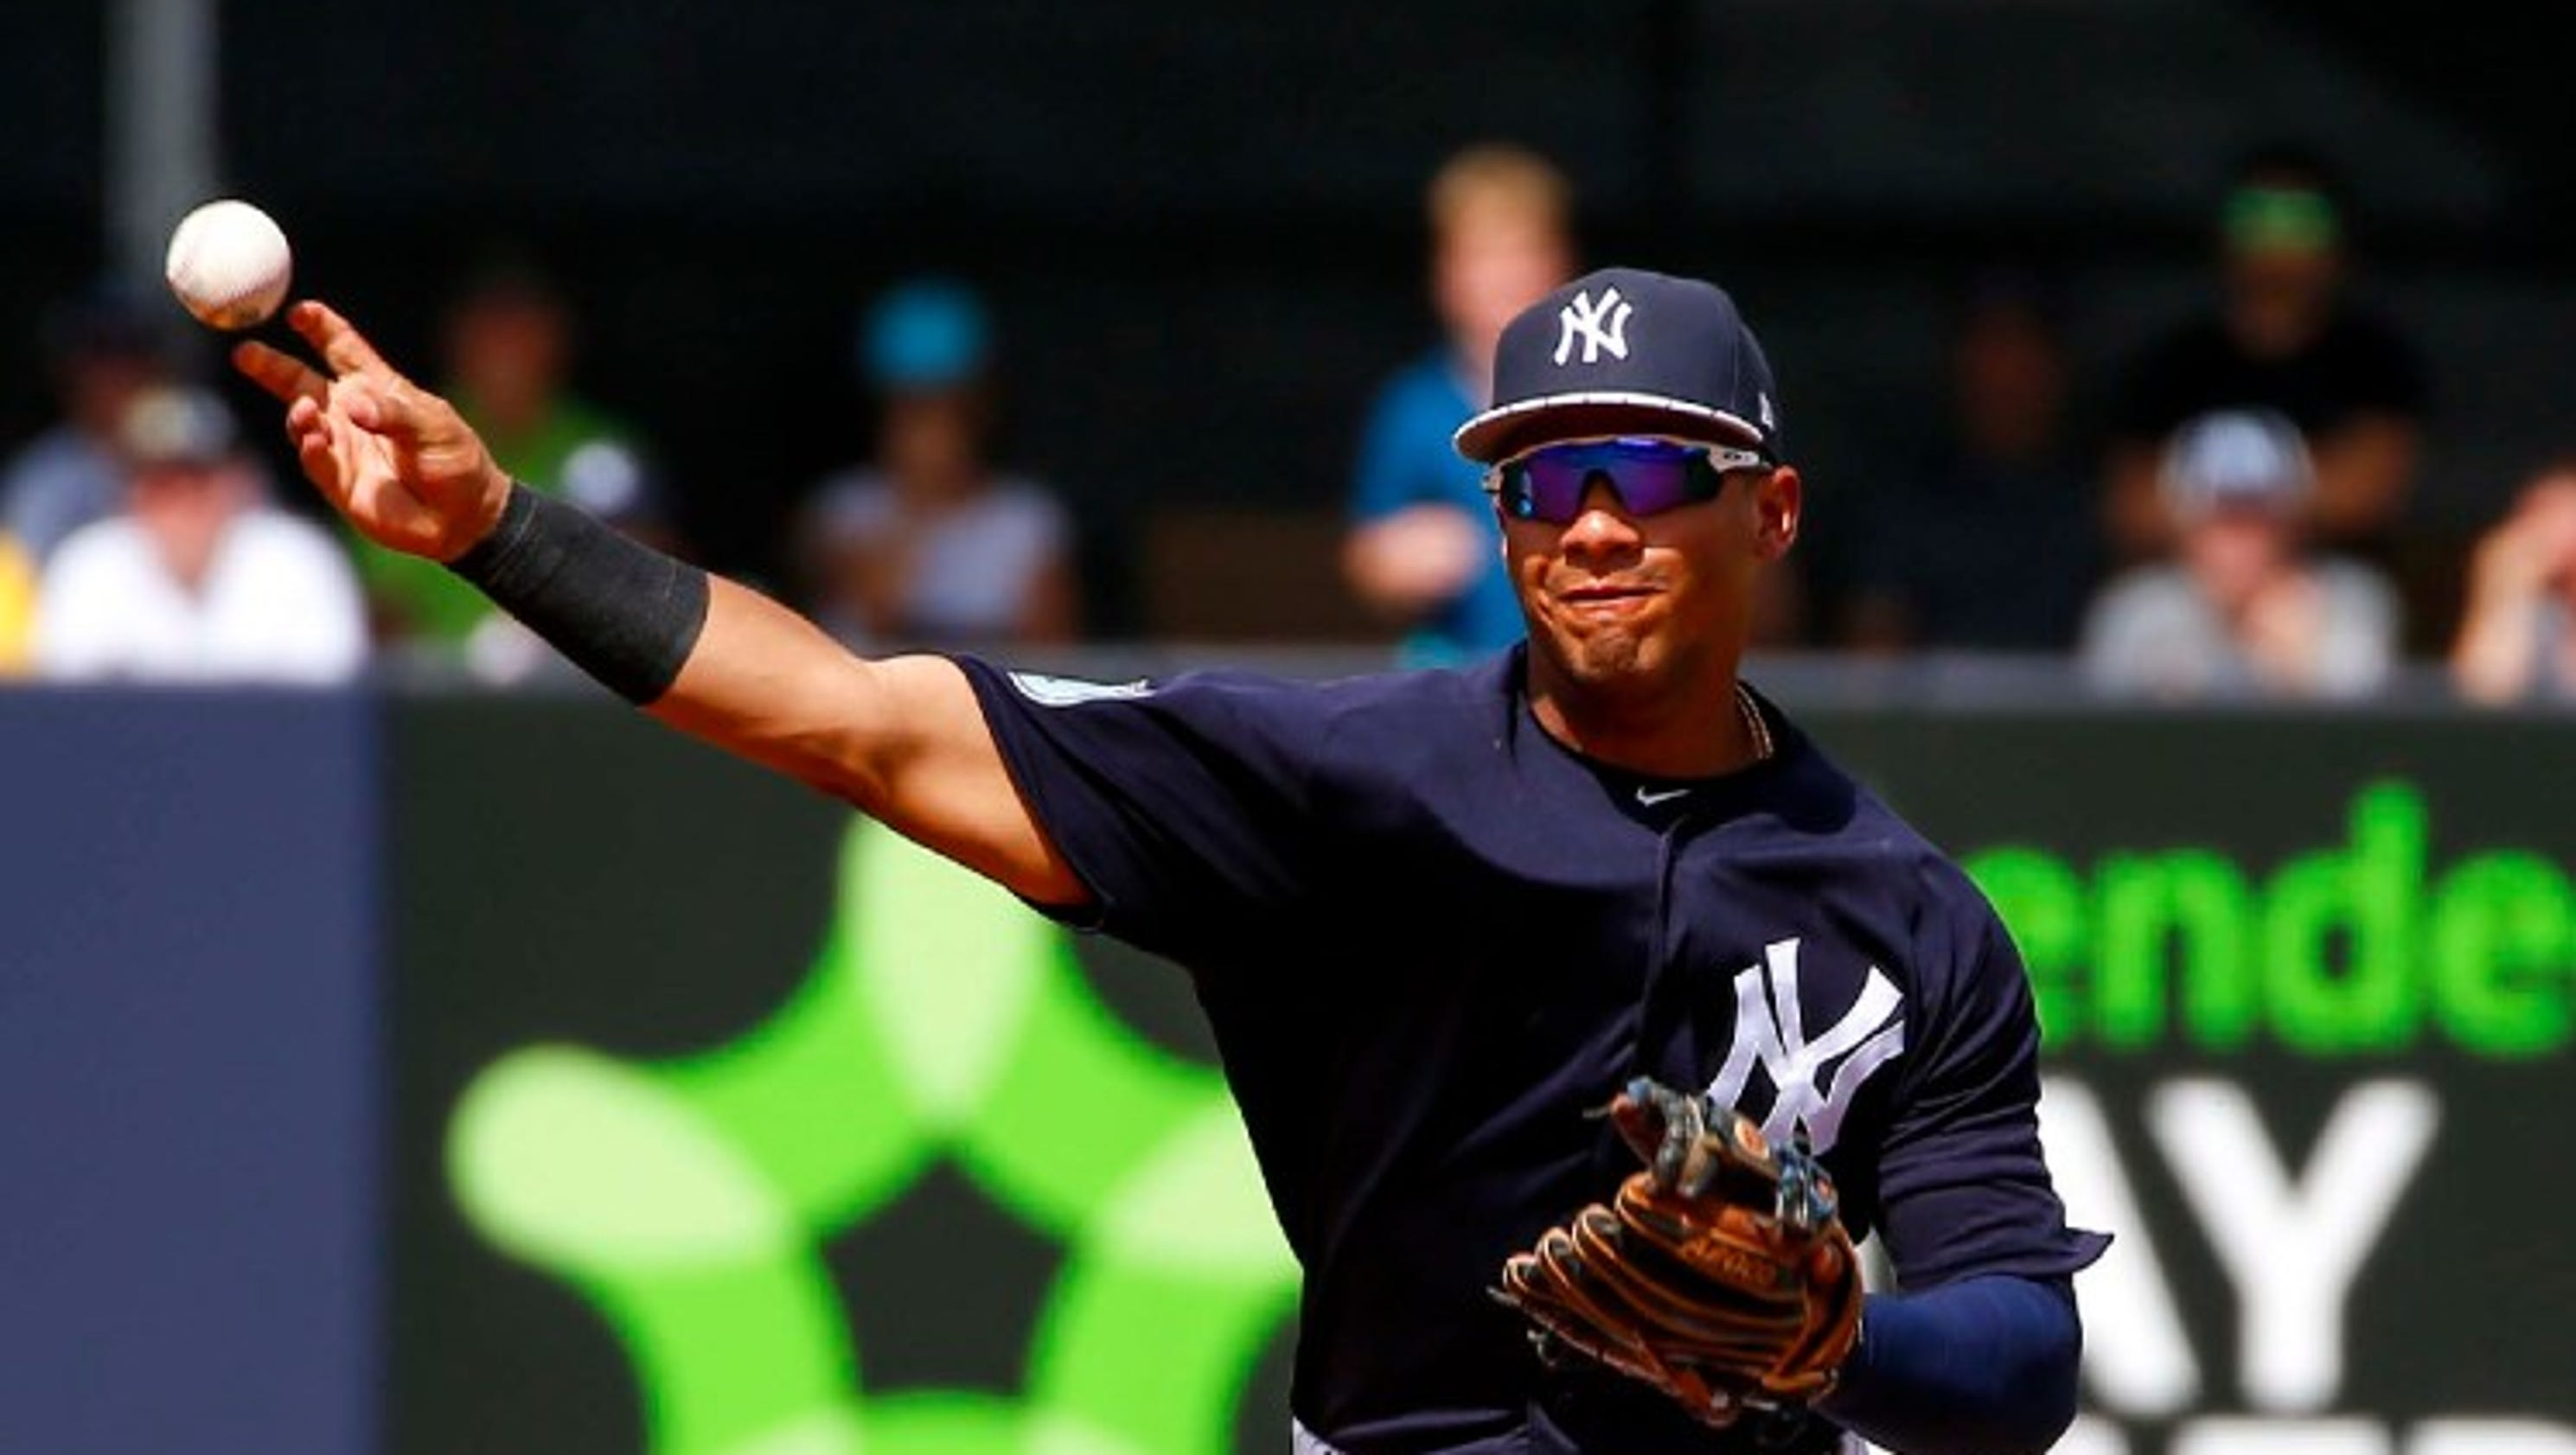 Yankees prospect Gleyber Torres out for season with torn UCL